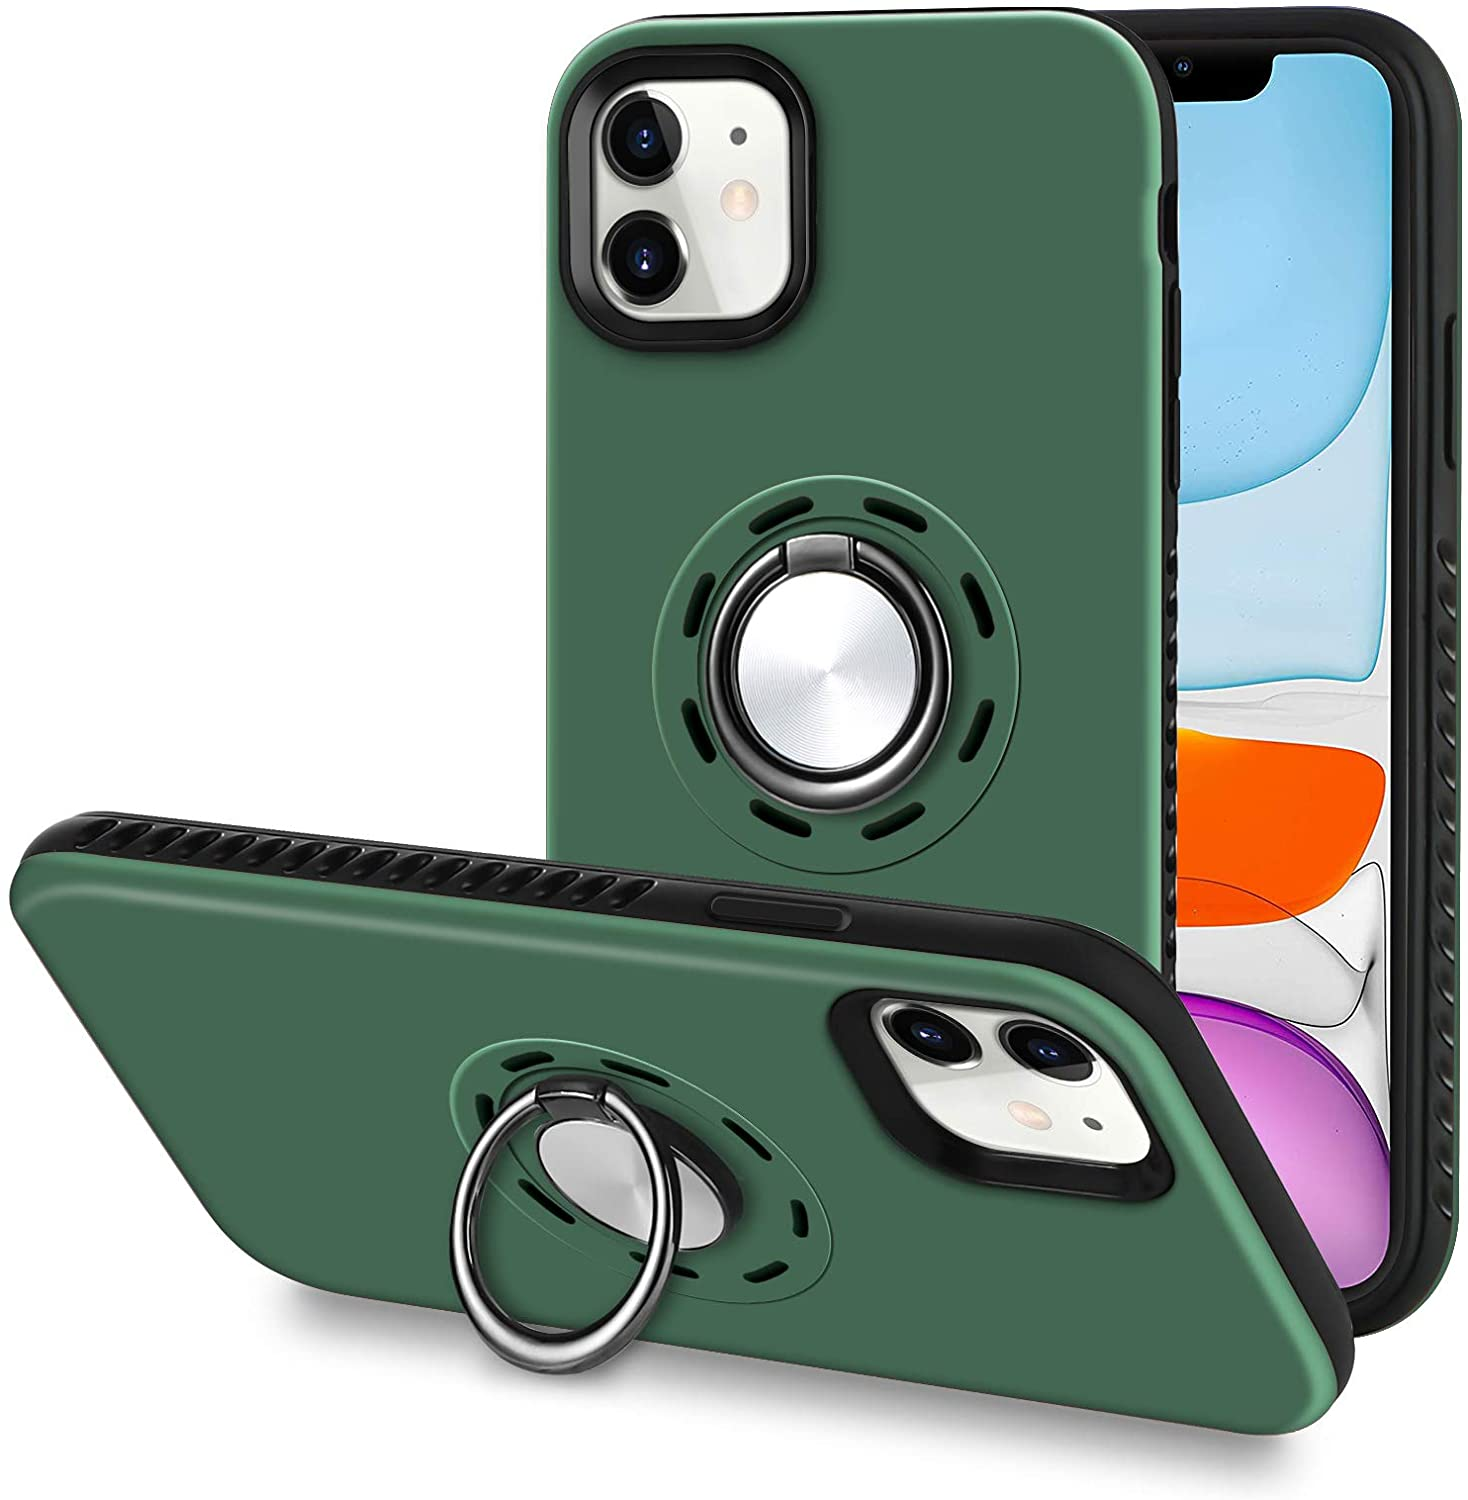 Casehome for iPhone 11 Case 6.1 inch (2019), Armor Military Grade Shockproof Full Protective Phone Cover with 360 Rotatable Ring Stand Holder Magnetic Car Mount for iPhone 11 6.1 inch - Green.